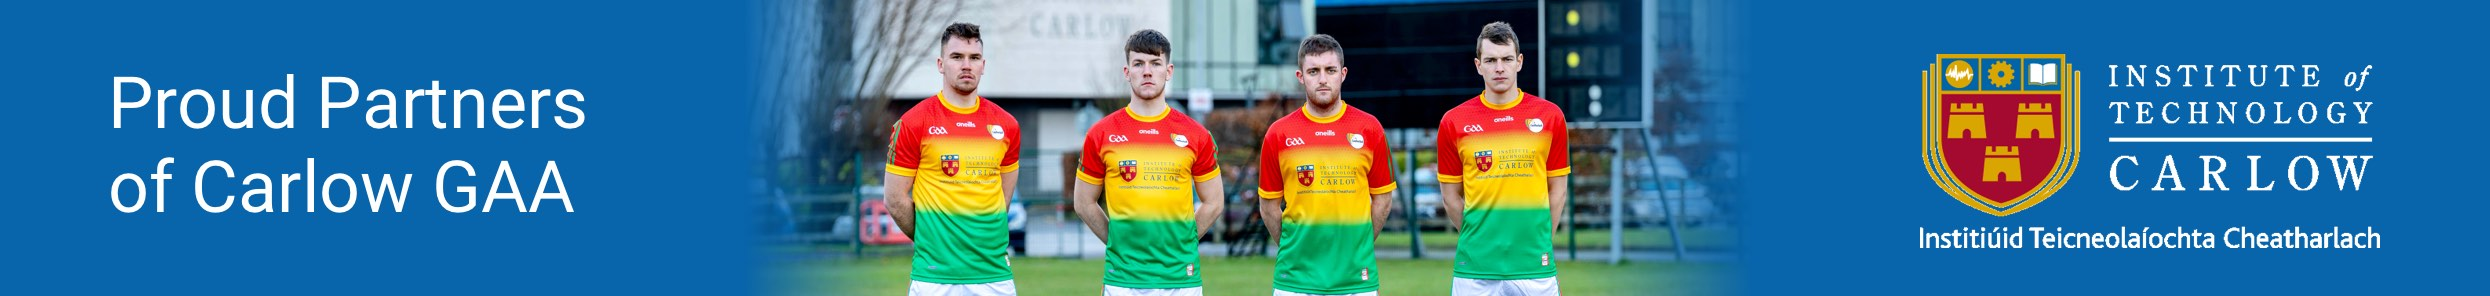 IT Carlow and Carlow GAA